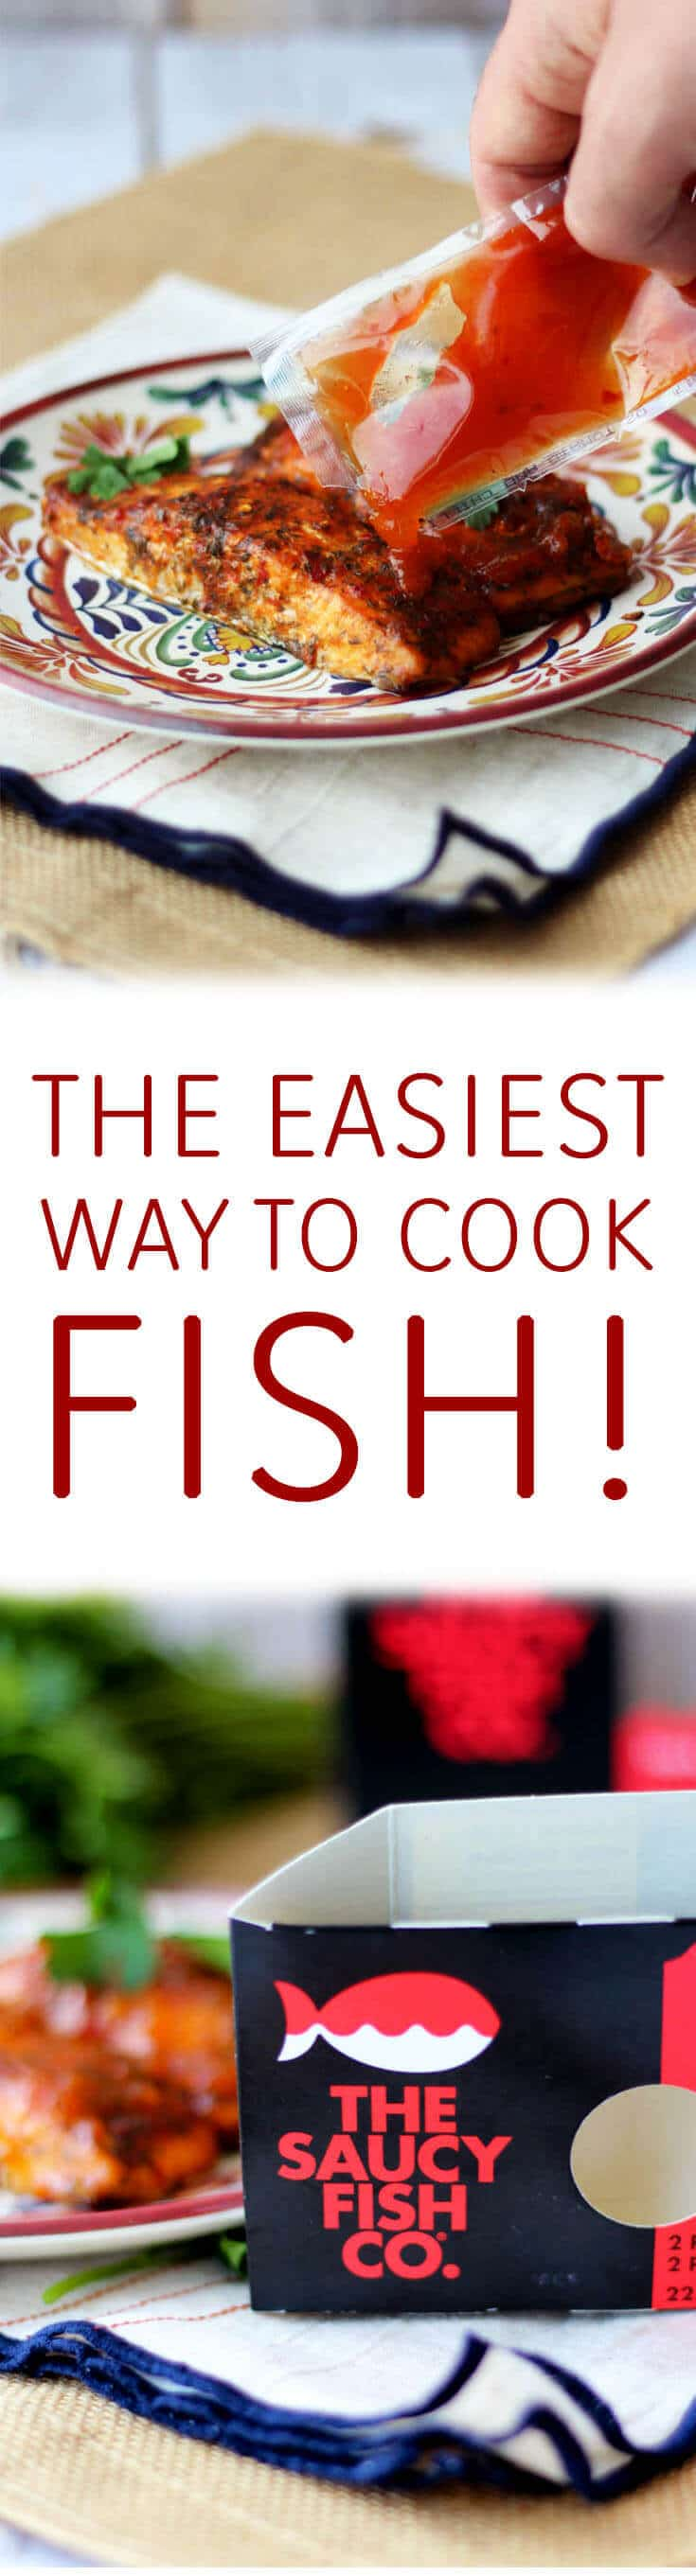 I share the easiest way to cook fish to get a healthy dinner on the table quickly with the new The Saucy Fish Co. frozen fish products.